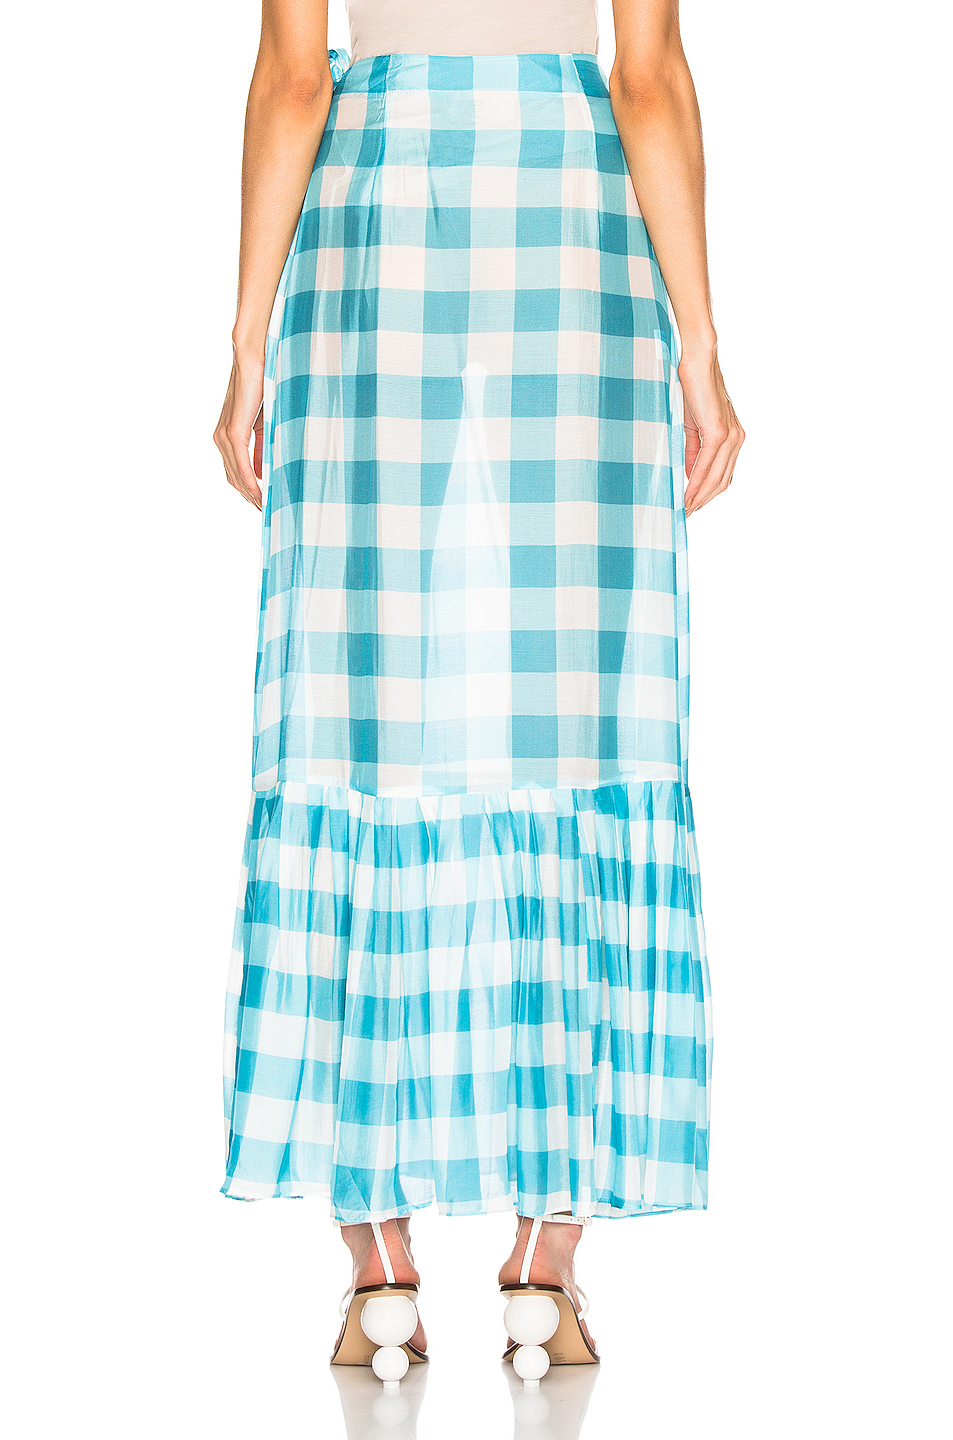 ADRIANA DEGREAS Vichy Long Pleated Skirt